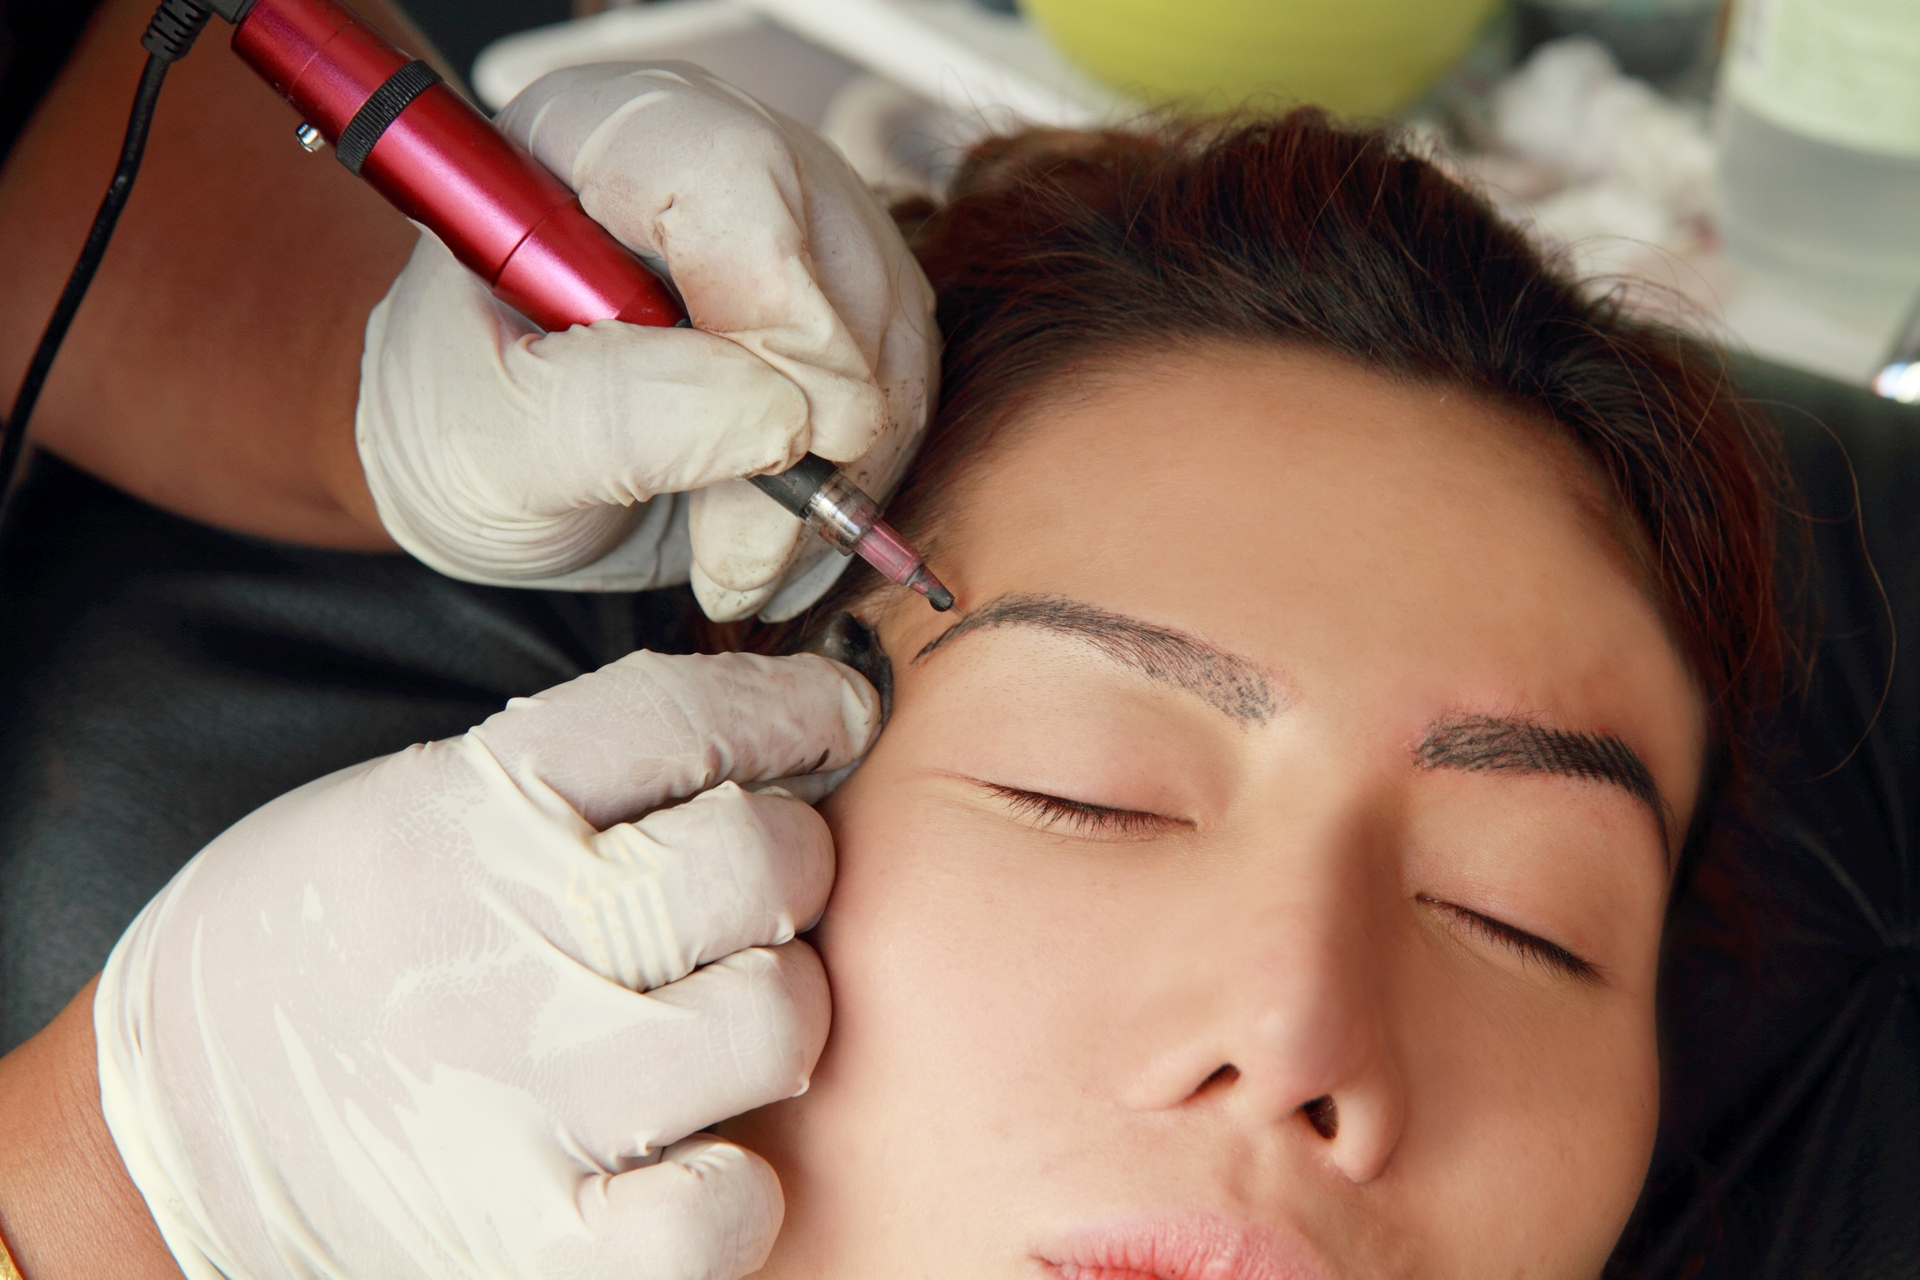 Permanent Makeup Causes Womens Faces To Burn In Mri Scan Nz Herald